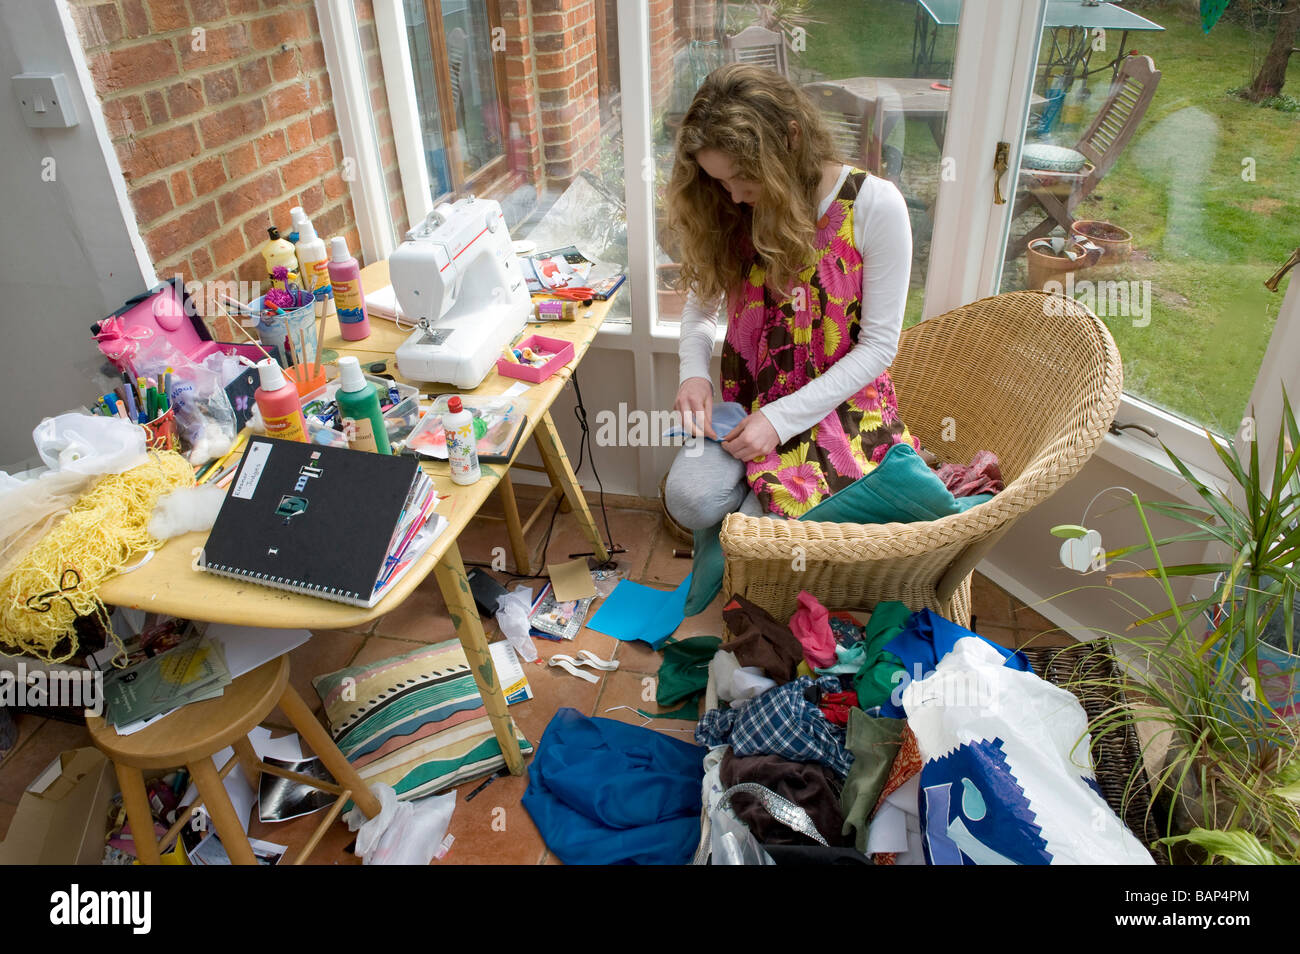 Working at home on gcse art course work a girl gets on with some sewing for textiles - Stock Image